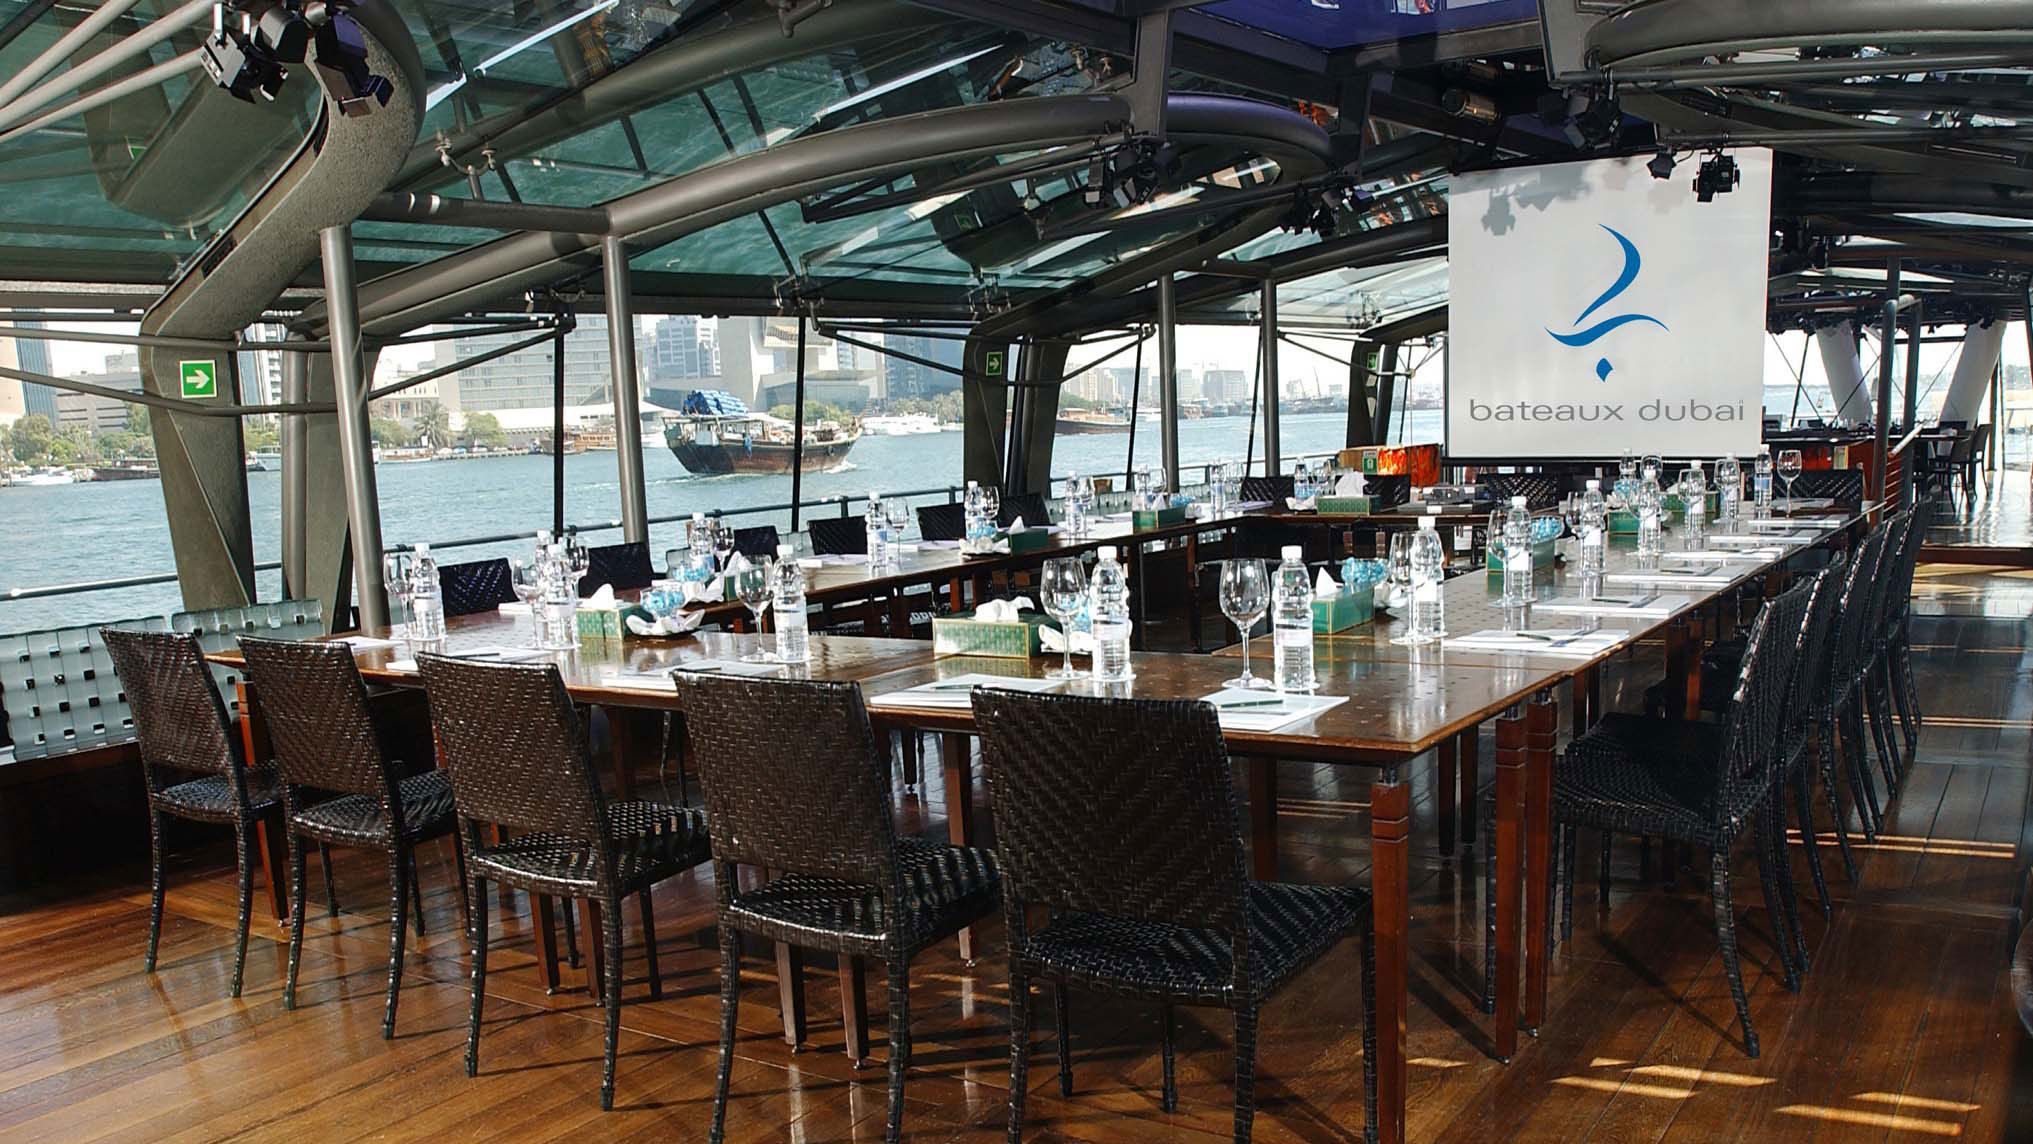 dinner table set for guests aboard boat in Dubai